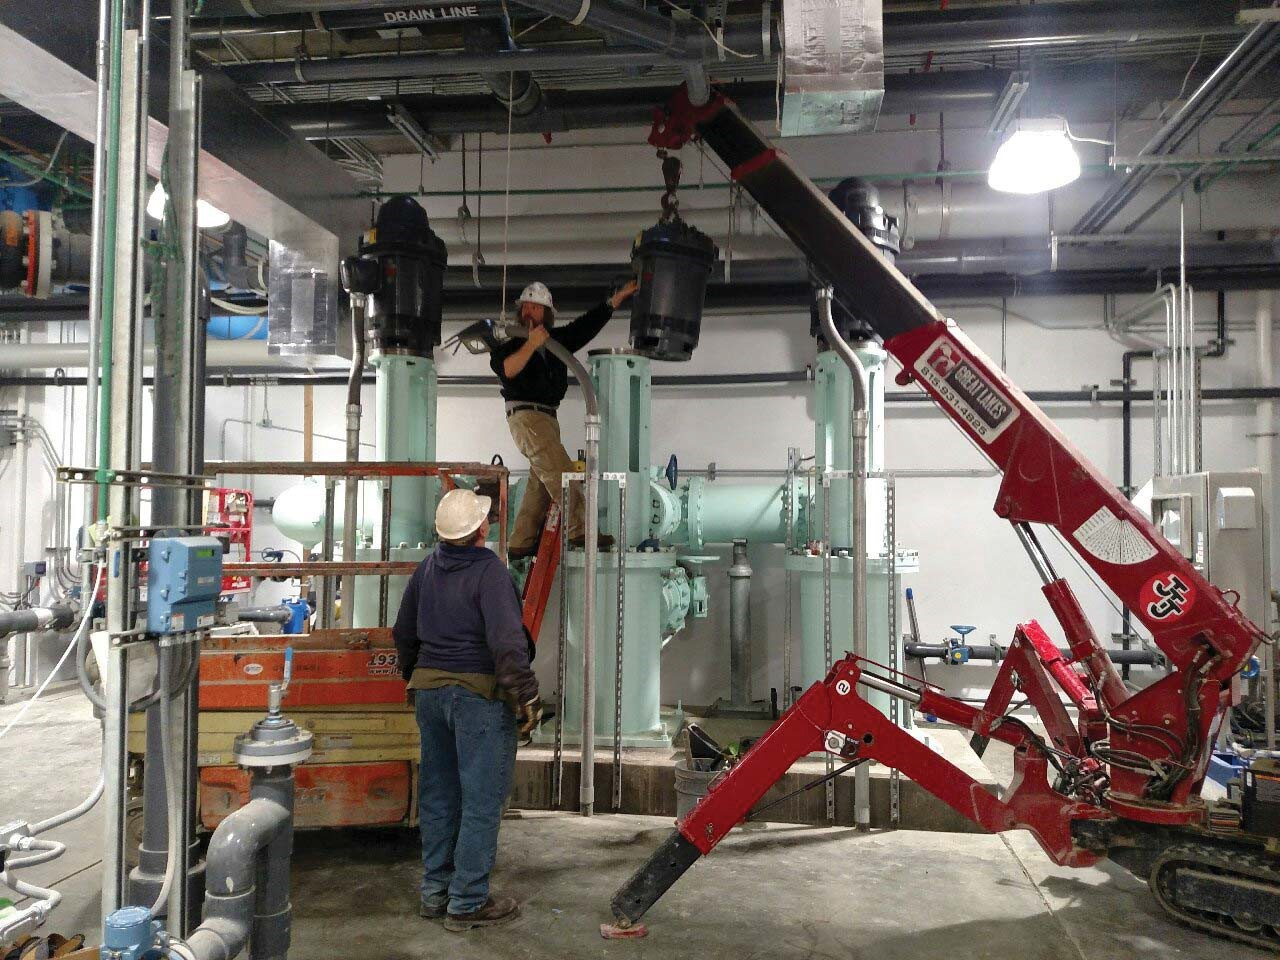 Watersmith installing the center vertical turbine pump motor.